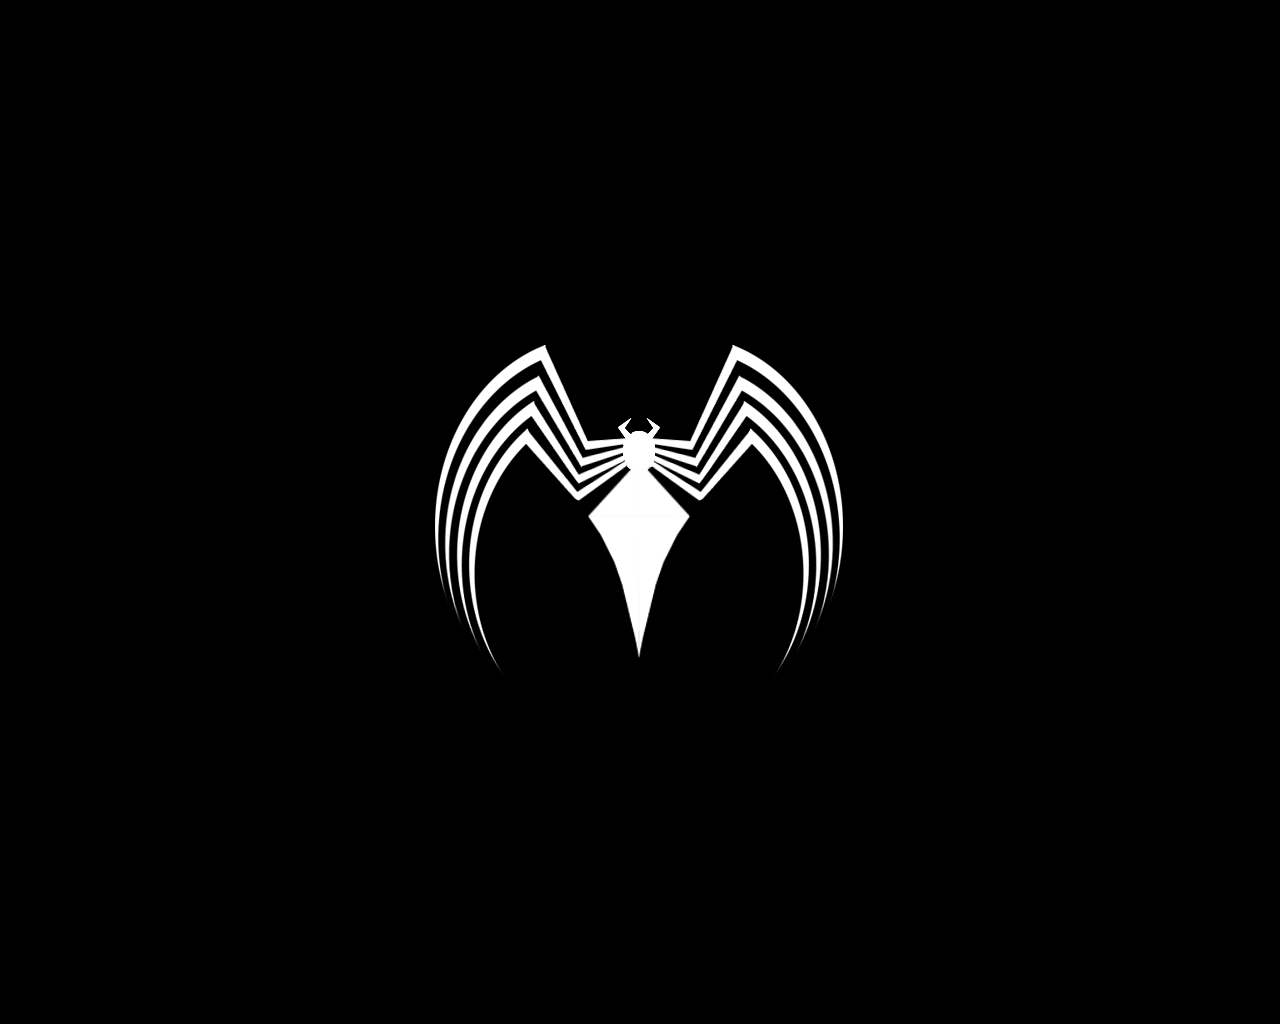 Venom logo/wallpaper